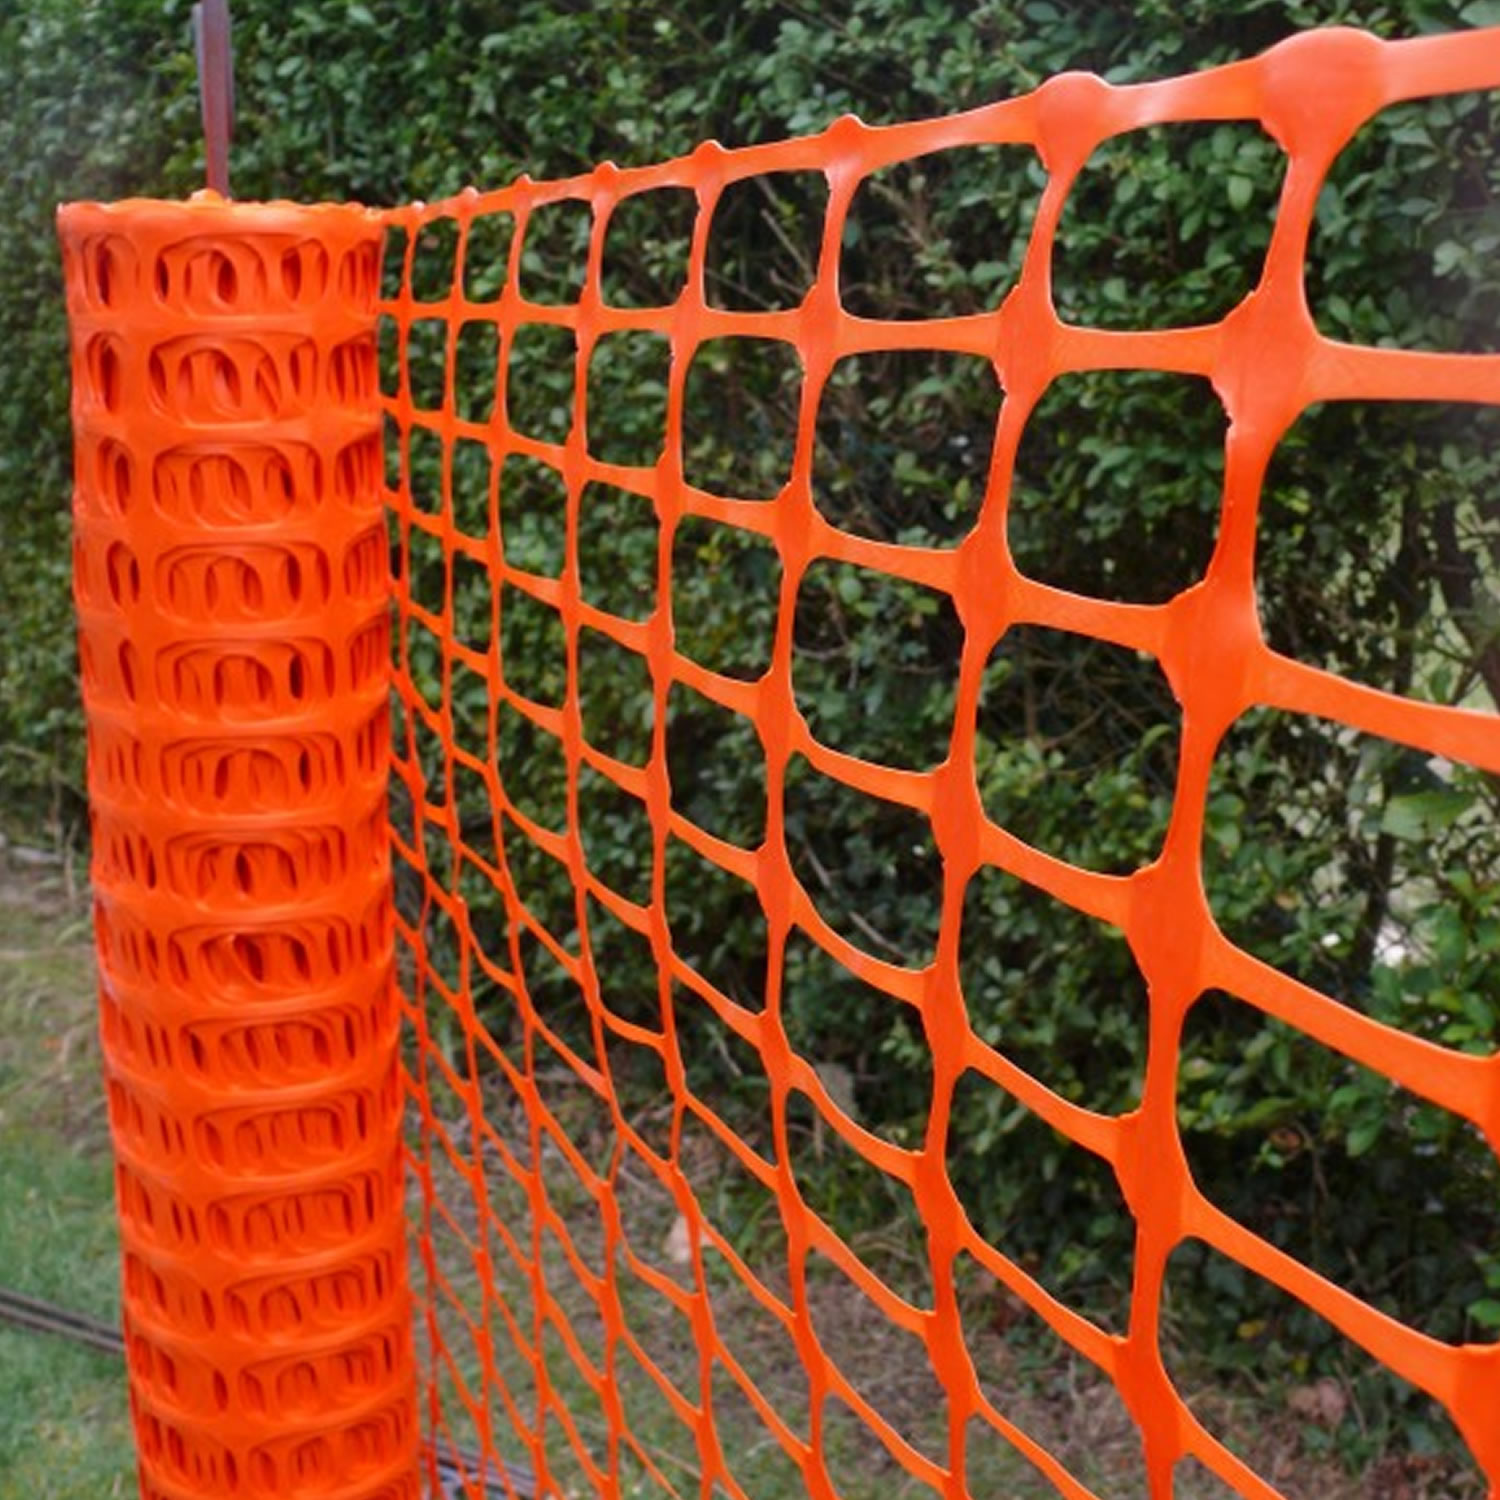 Groundmaster Plastic Mesh Barrier Safety Fence With Metal